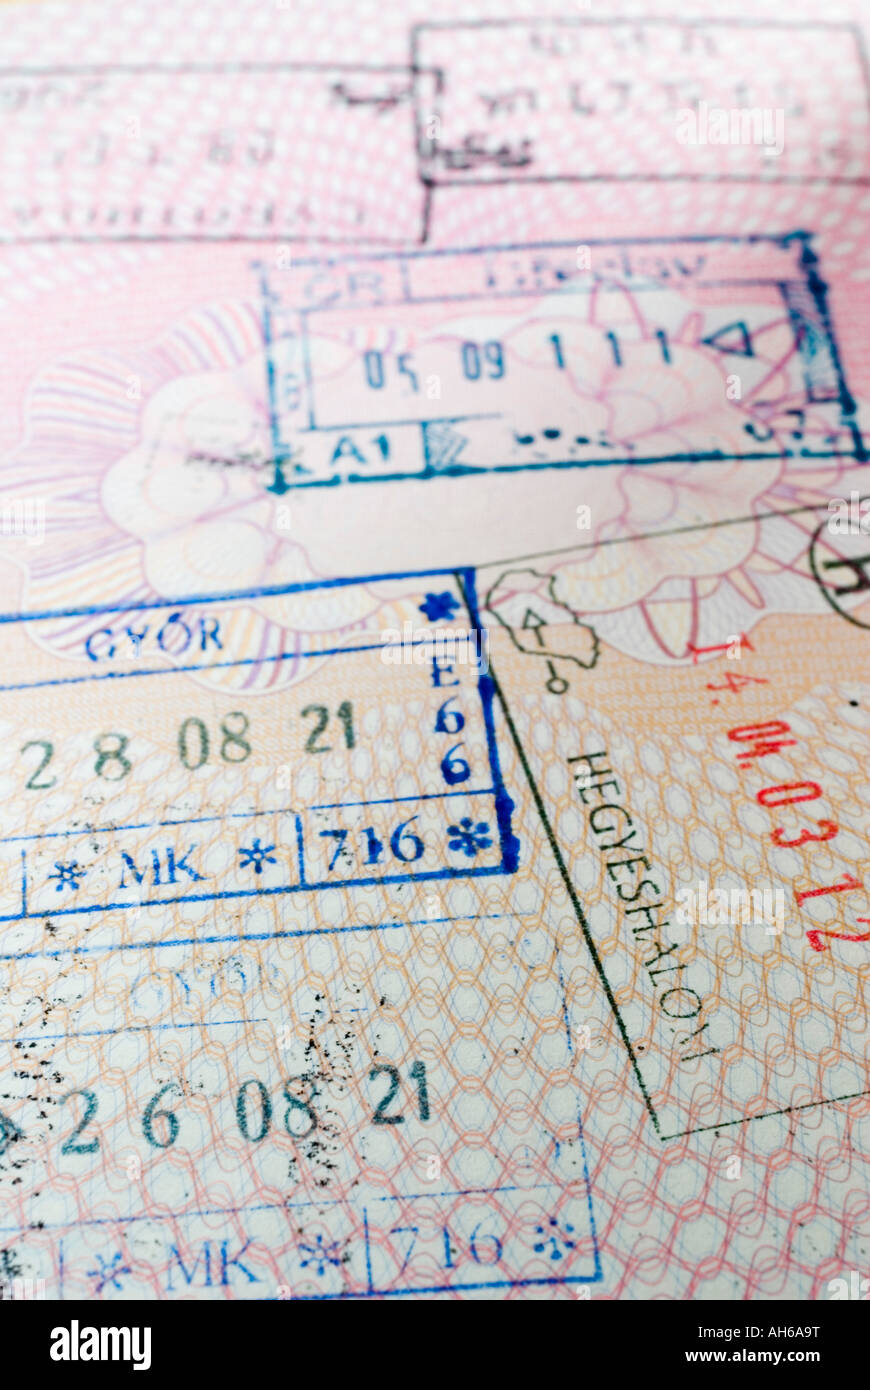 Page of UK passport with East European entry visas - Stock Image